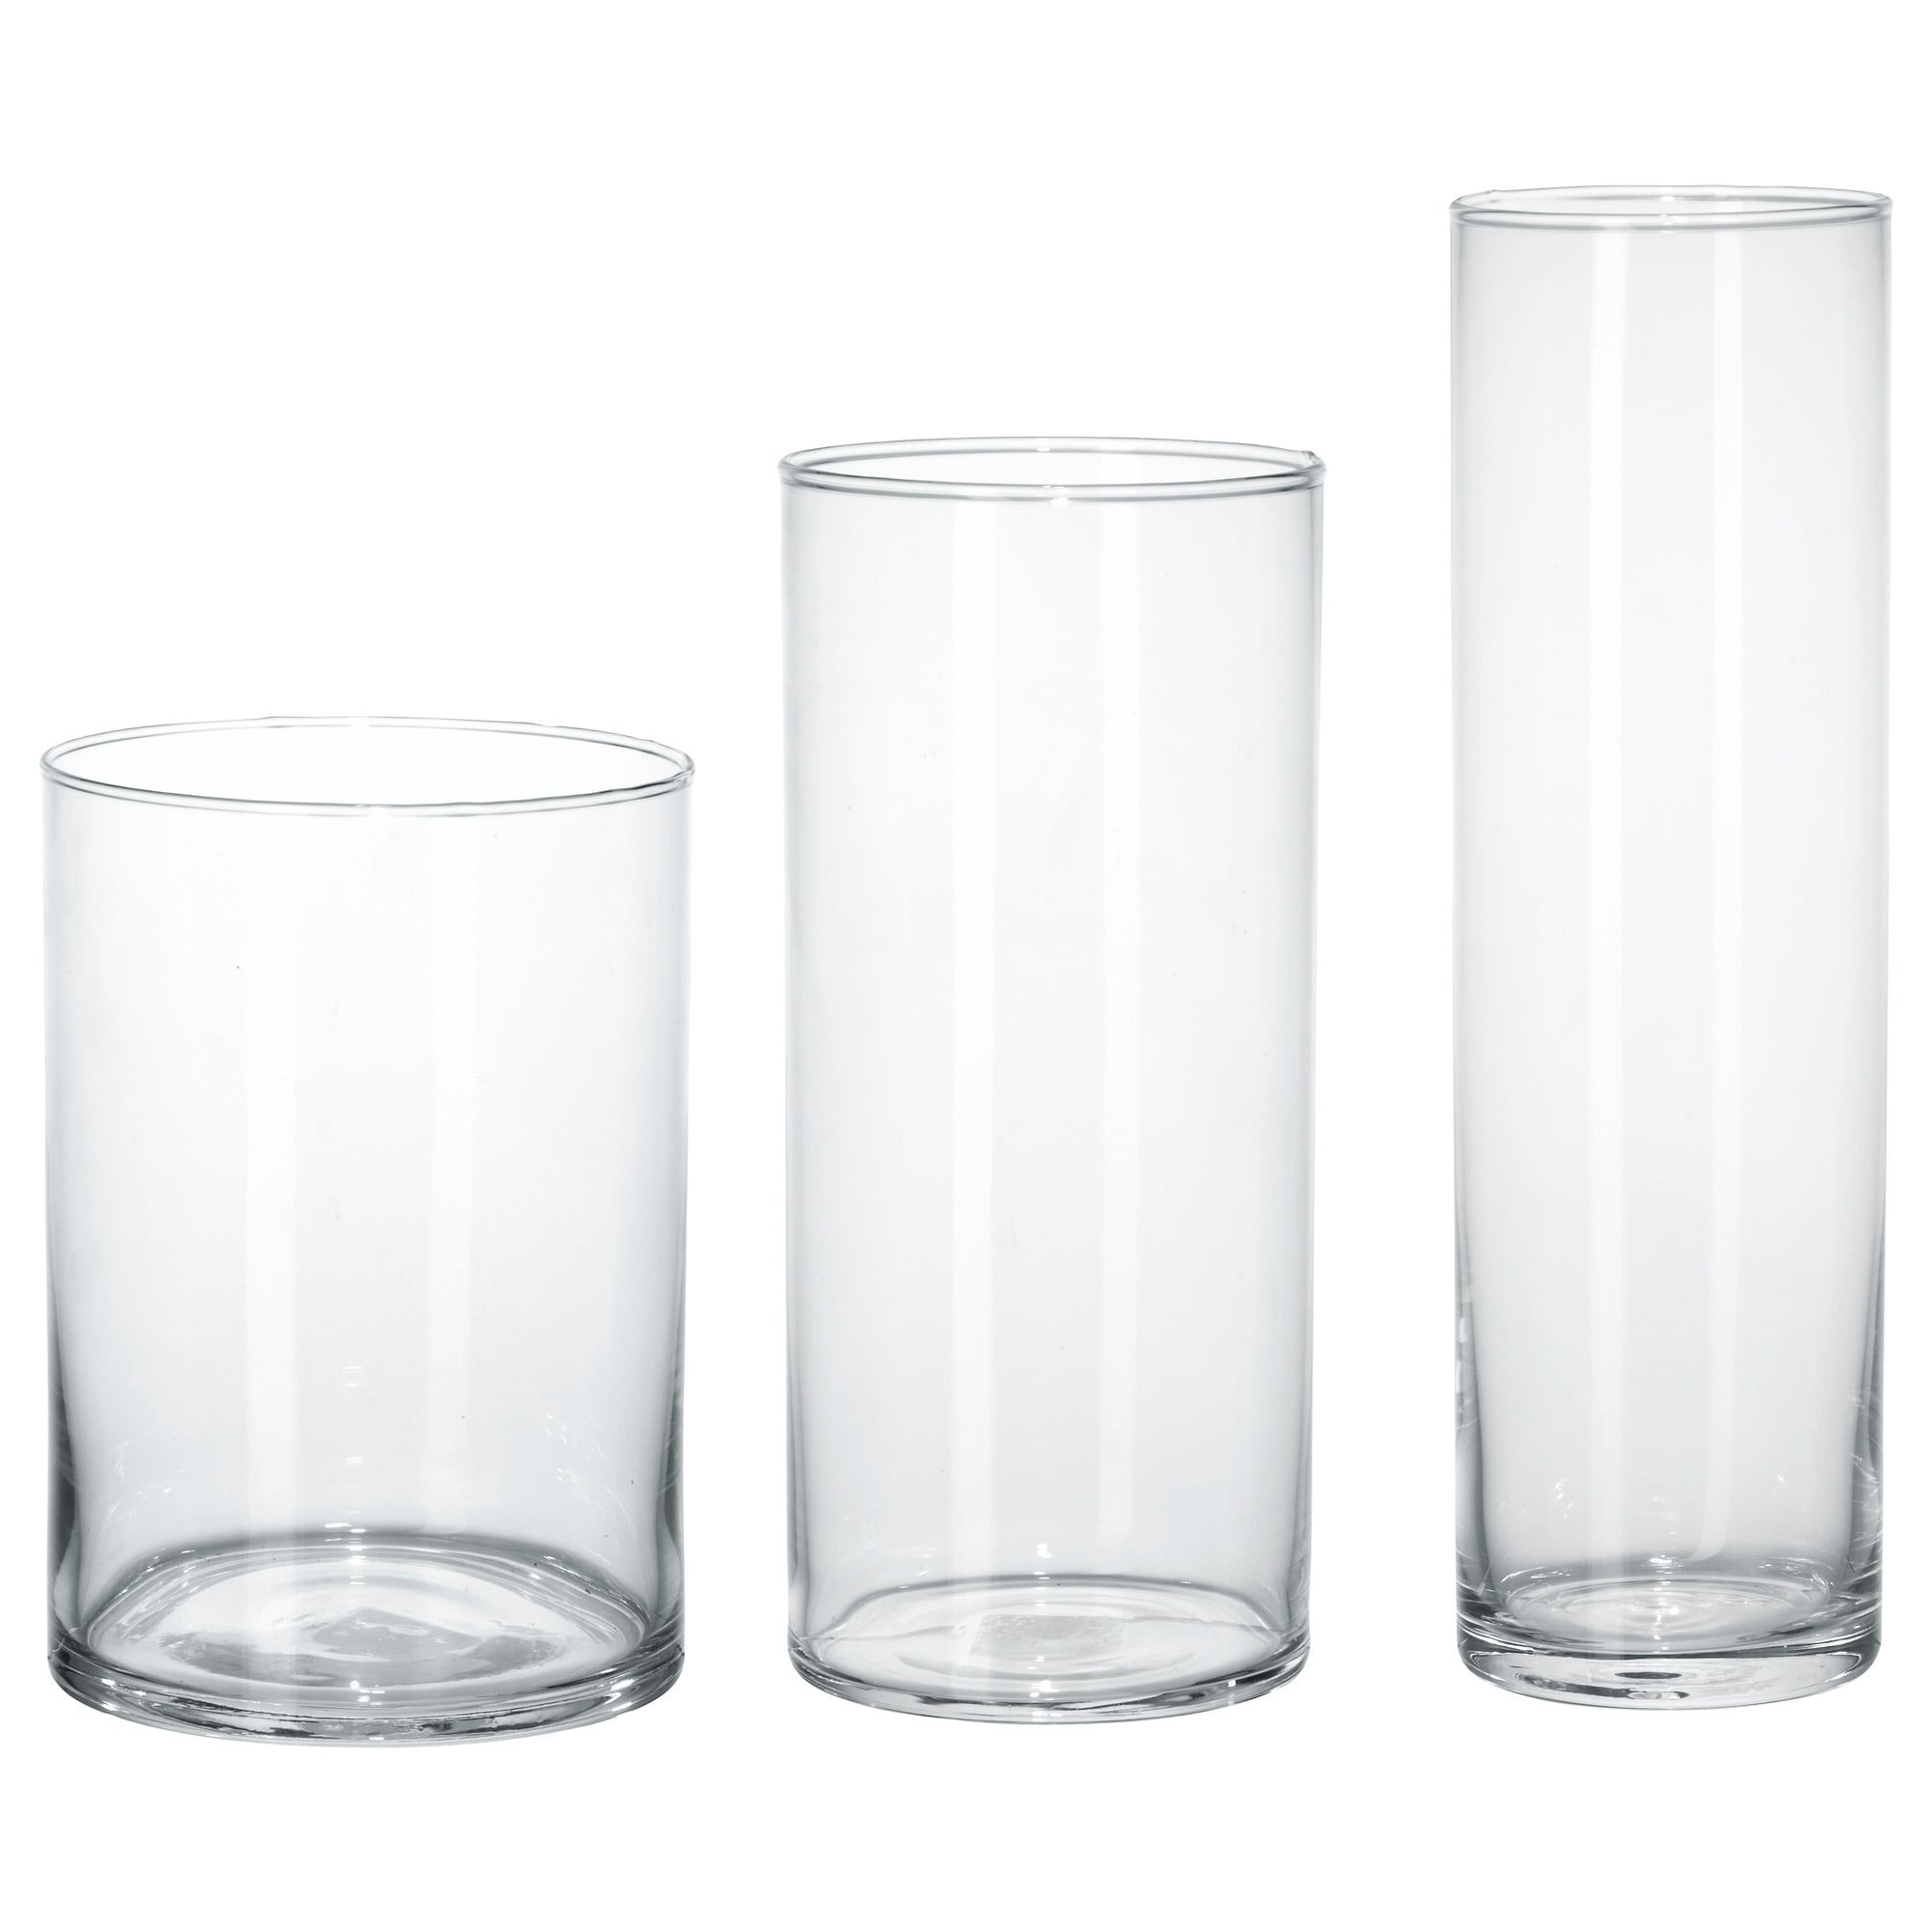 26 Amazing Tall Clear Plastic Vases for Centerpieces 2021 free download tall clear plastic vases for centerpieces of cylinder vase set of 3 ikea intended for english franac2a7ais